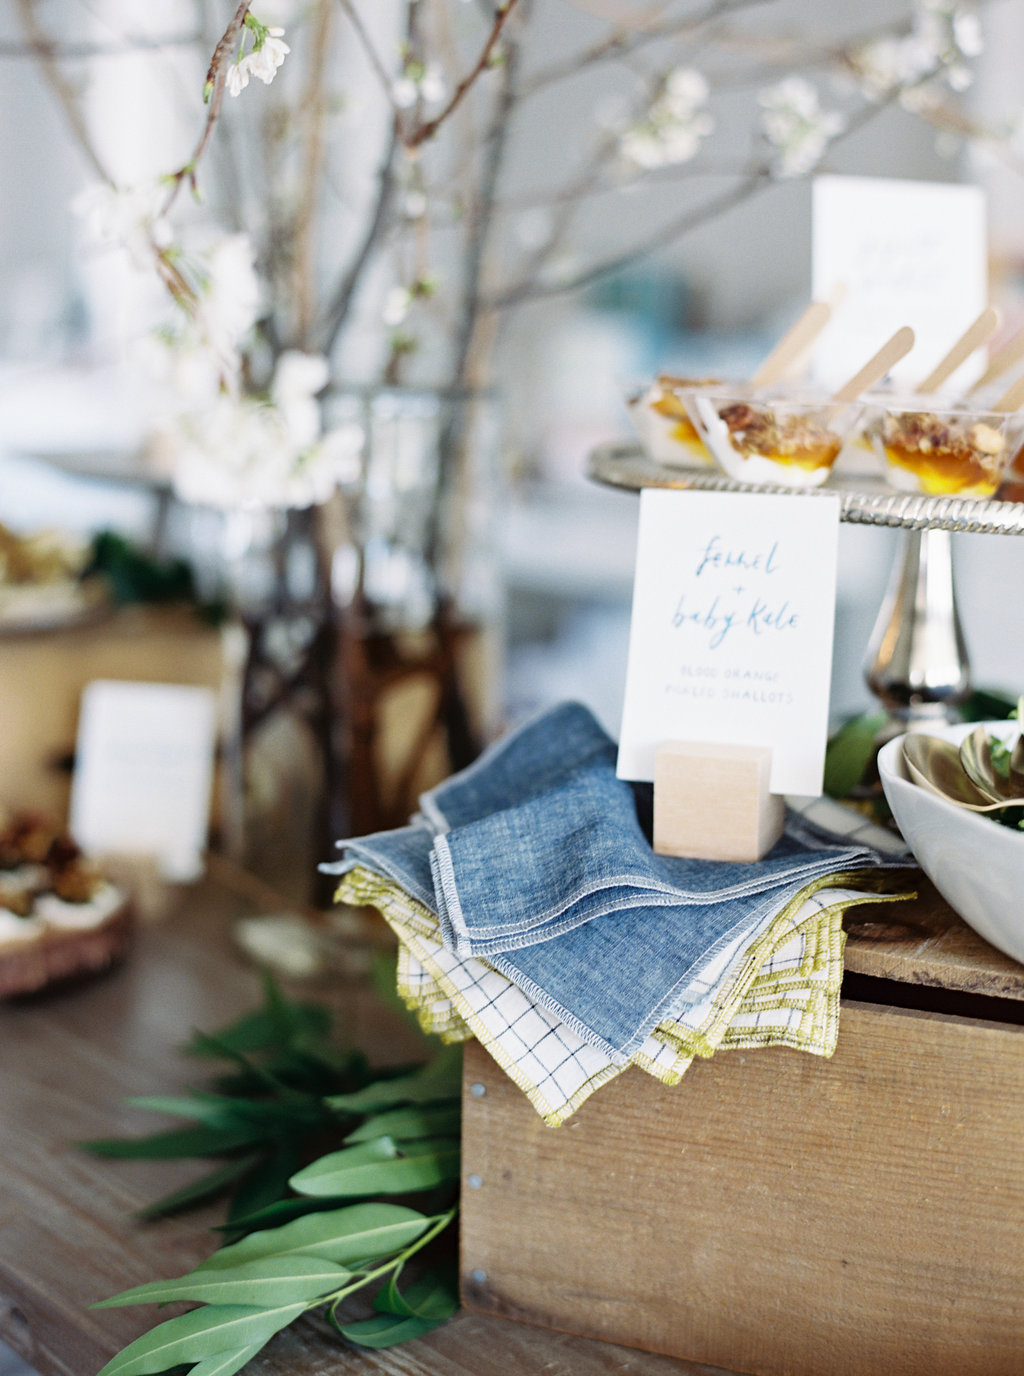 uncommon-feasts-baby-shower-inspiration-food-napkins-linen-custom